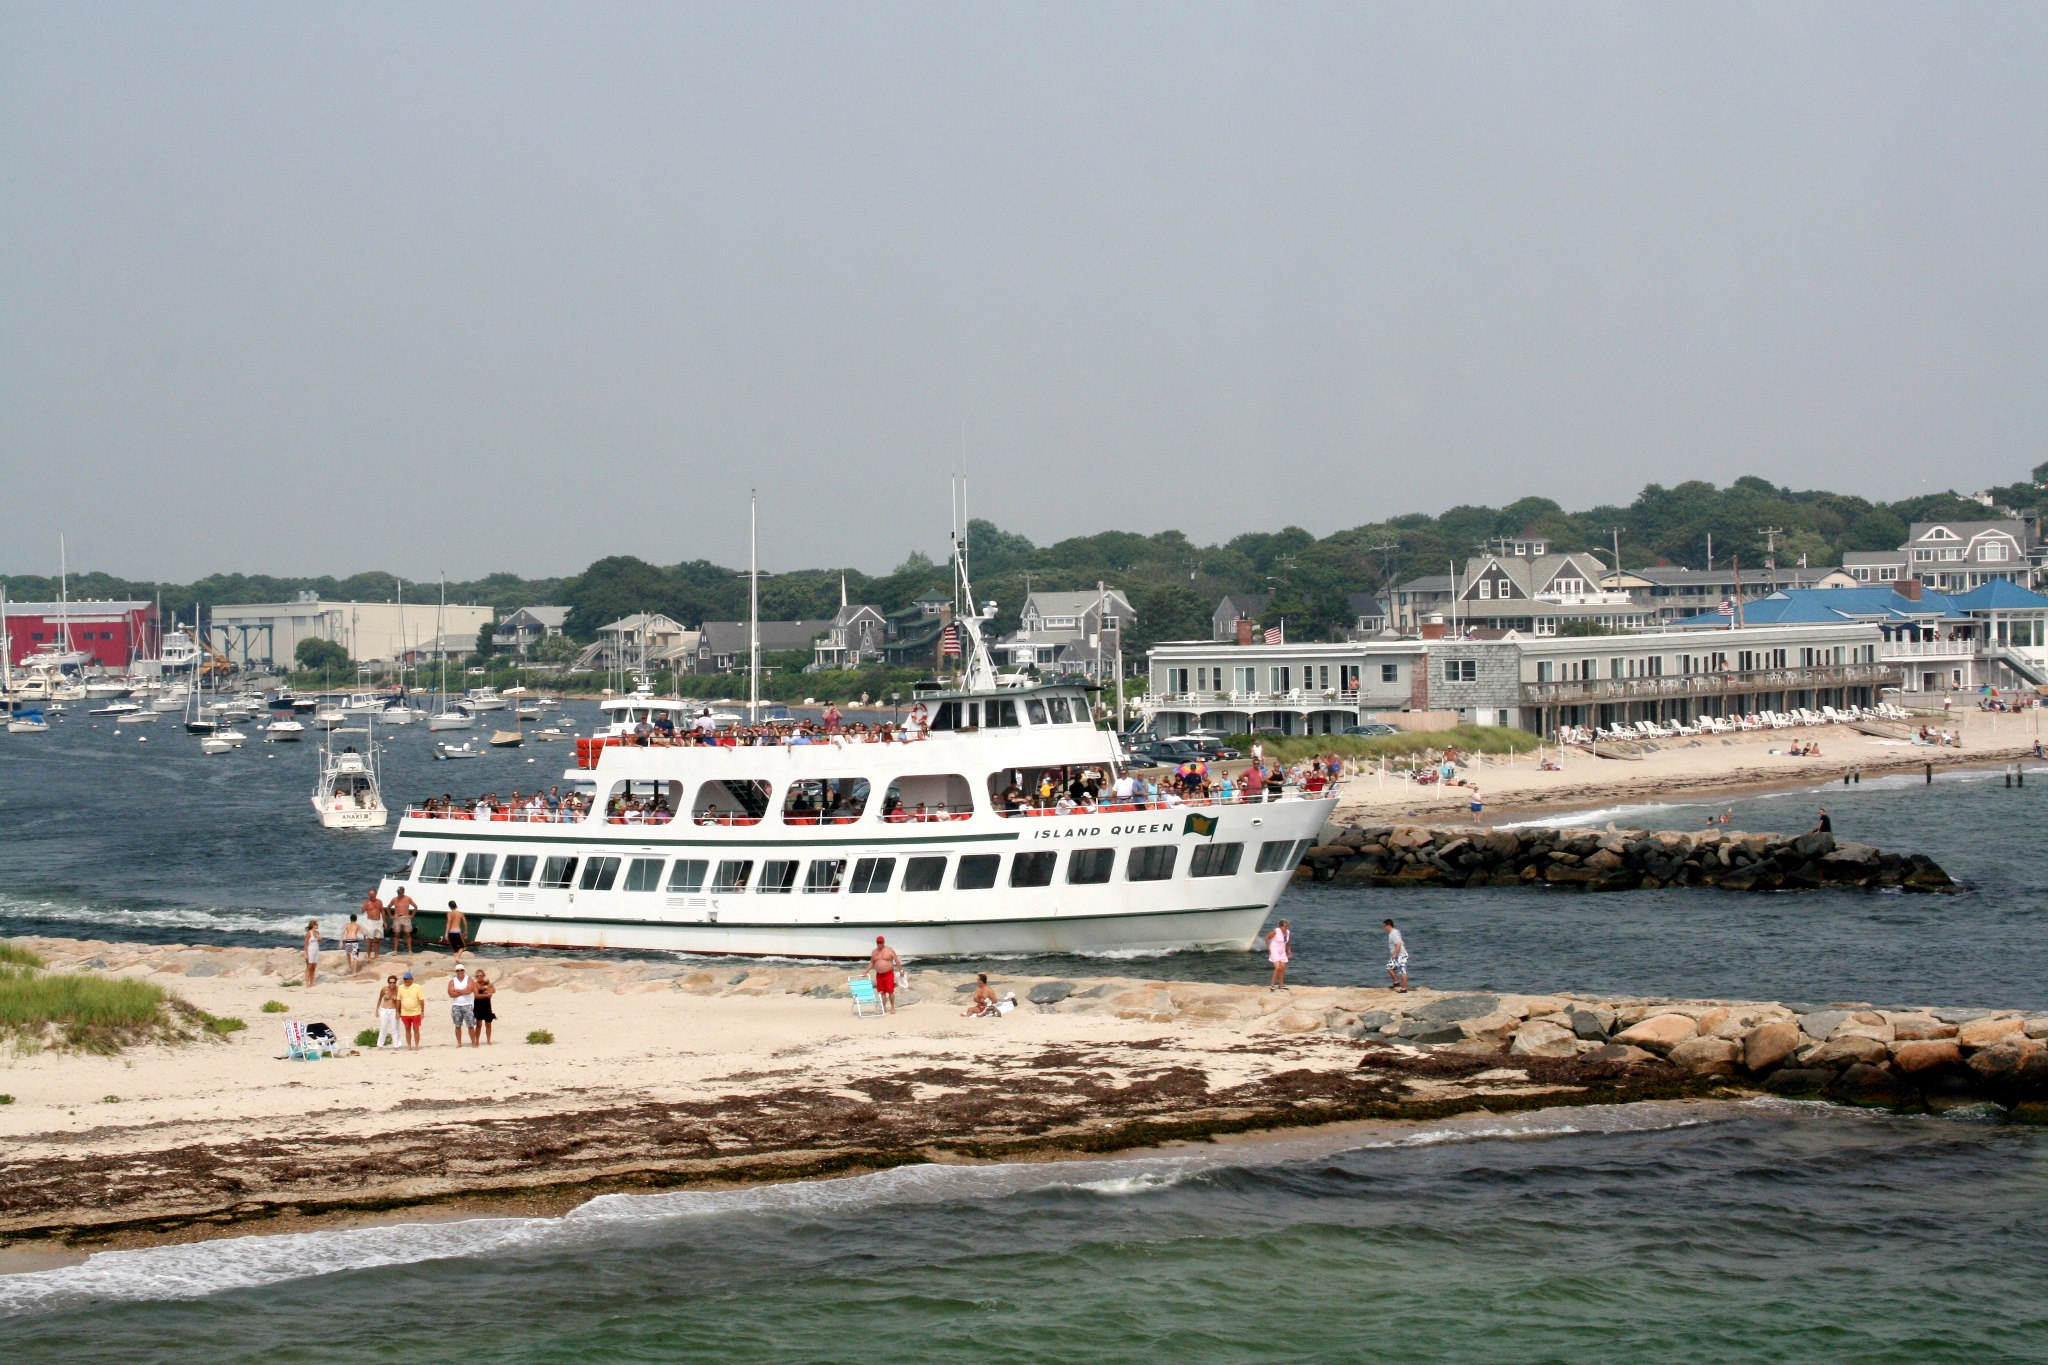 The most pleasurable passenger ferry experience that Cape Cod has to offer with regular sailings from Falmouth Harbor to Oak Bluffs, Martha's Vineyard.